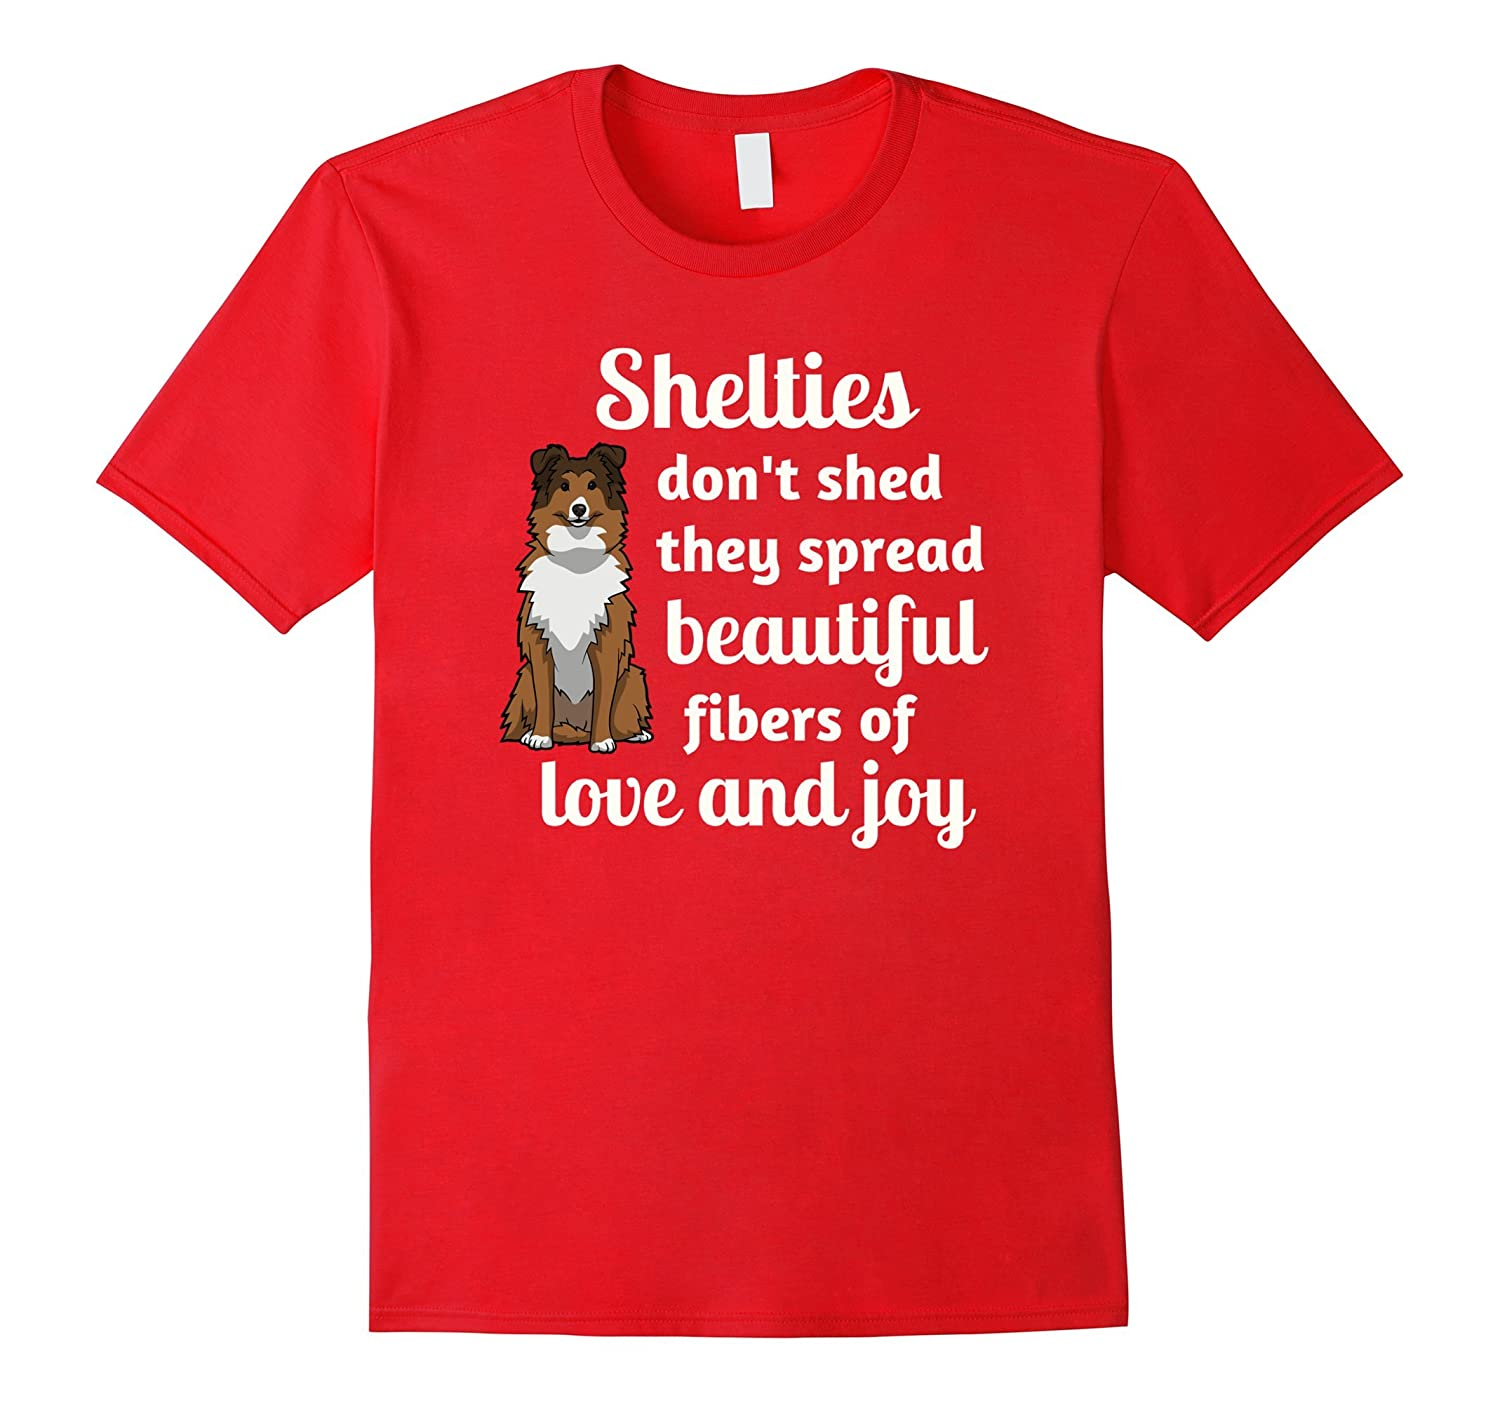 Adorable Shelties Don't Shed T-Shirt, Sheltie Shirt, Gift-4LVS